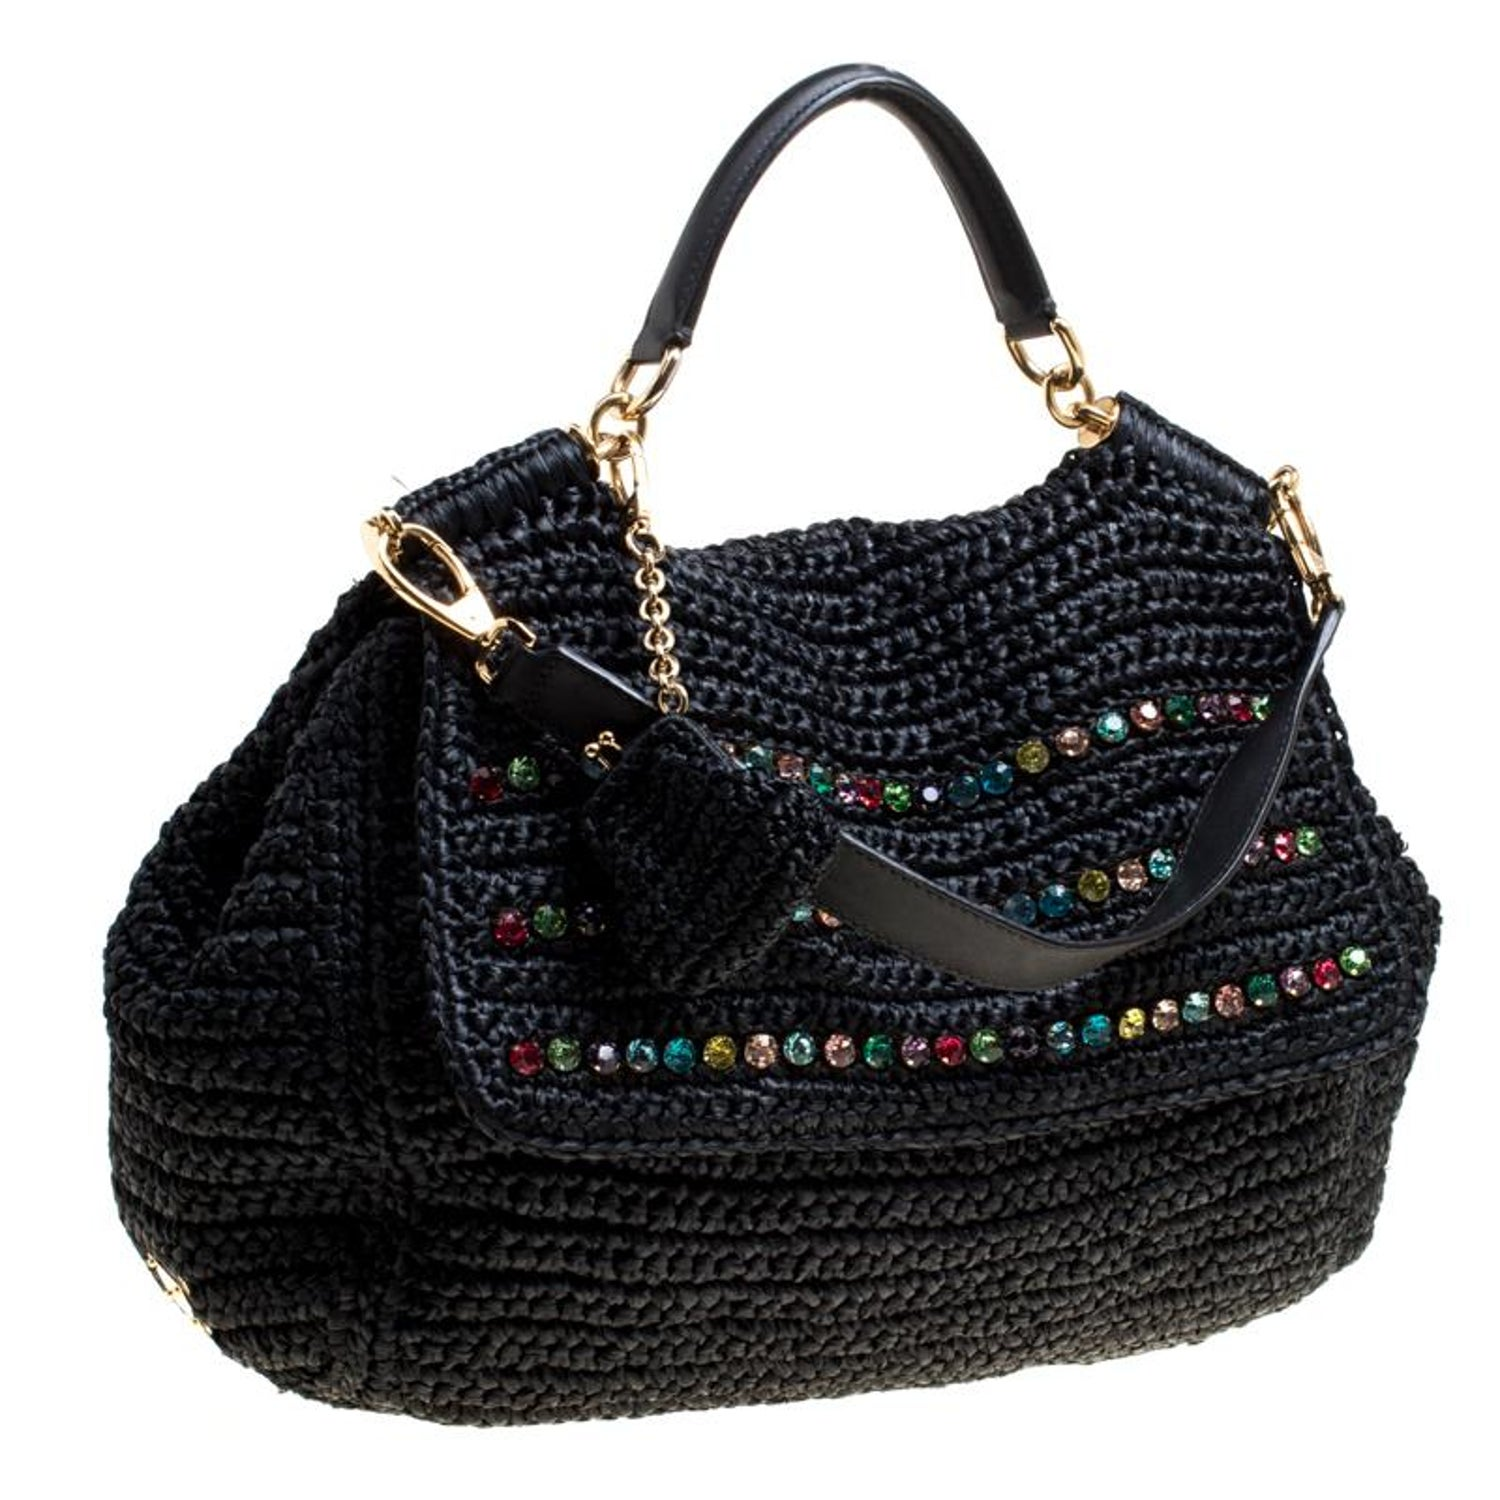 7d0362f1b38 Dolce and Gabbana Black Crochet Straw Miss Sicily Top Handle Bag For Sale  at 1stdibs